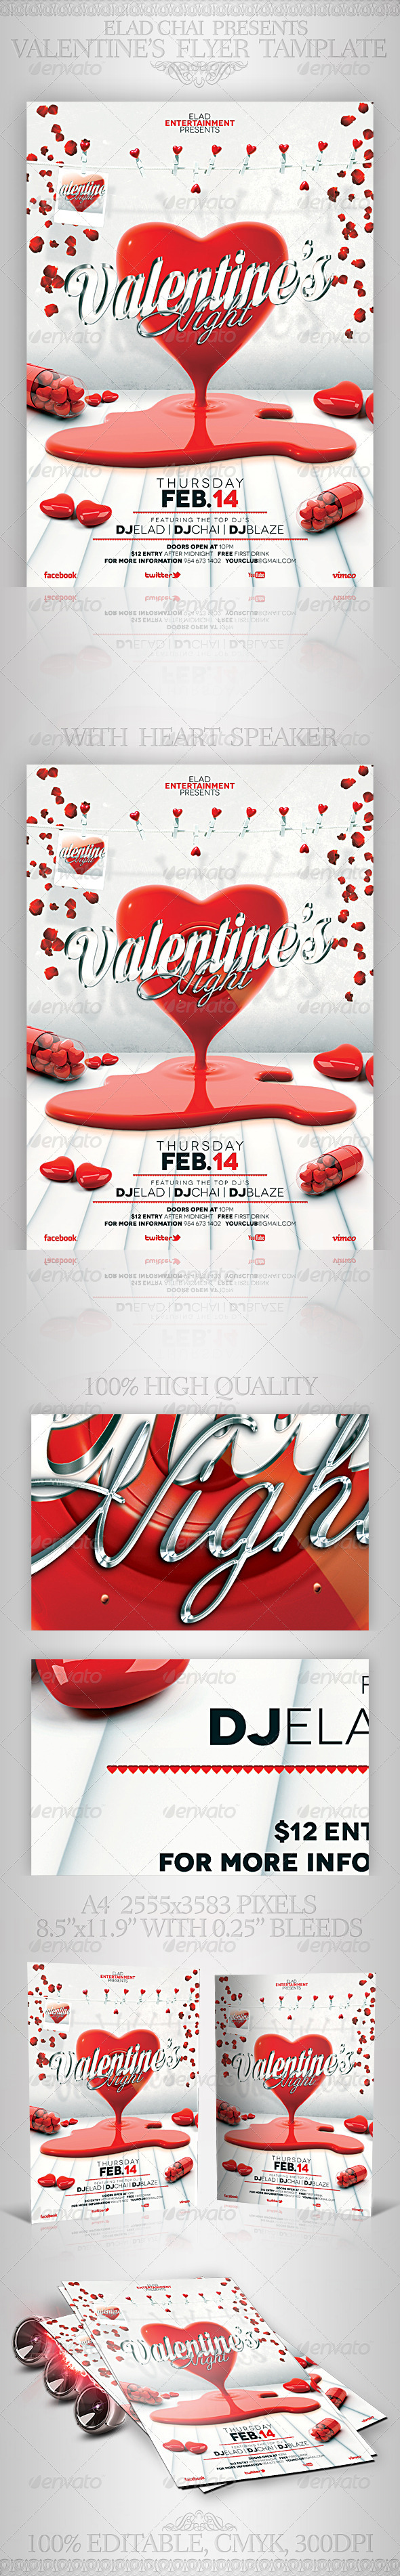 2014 Valentine's Day A4 Flyer Poster Template - Holidays Events